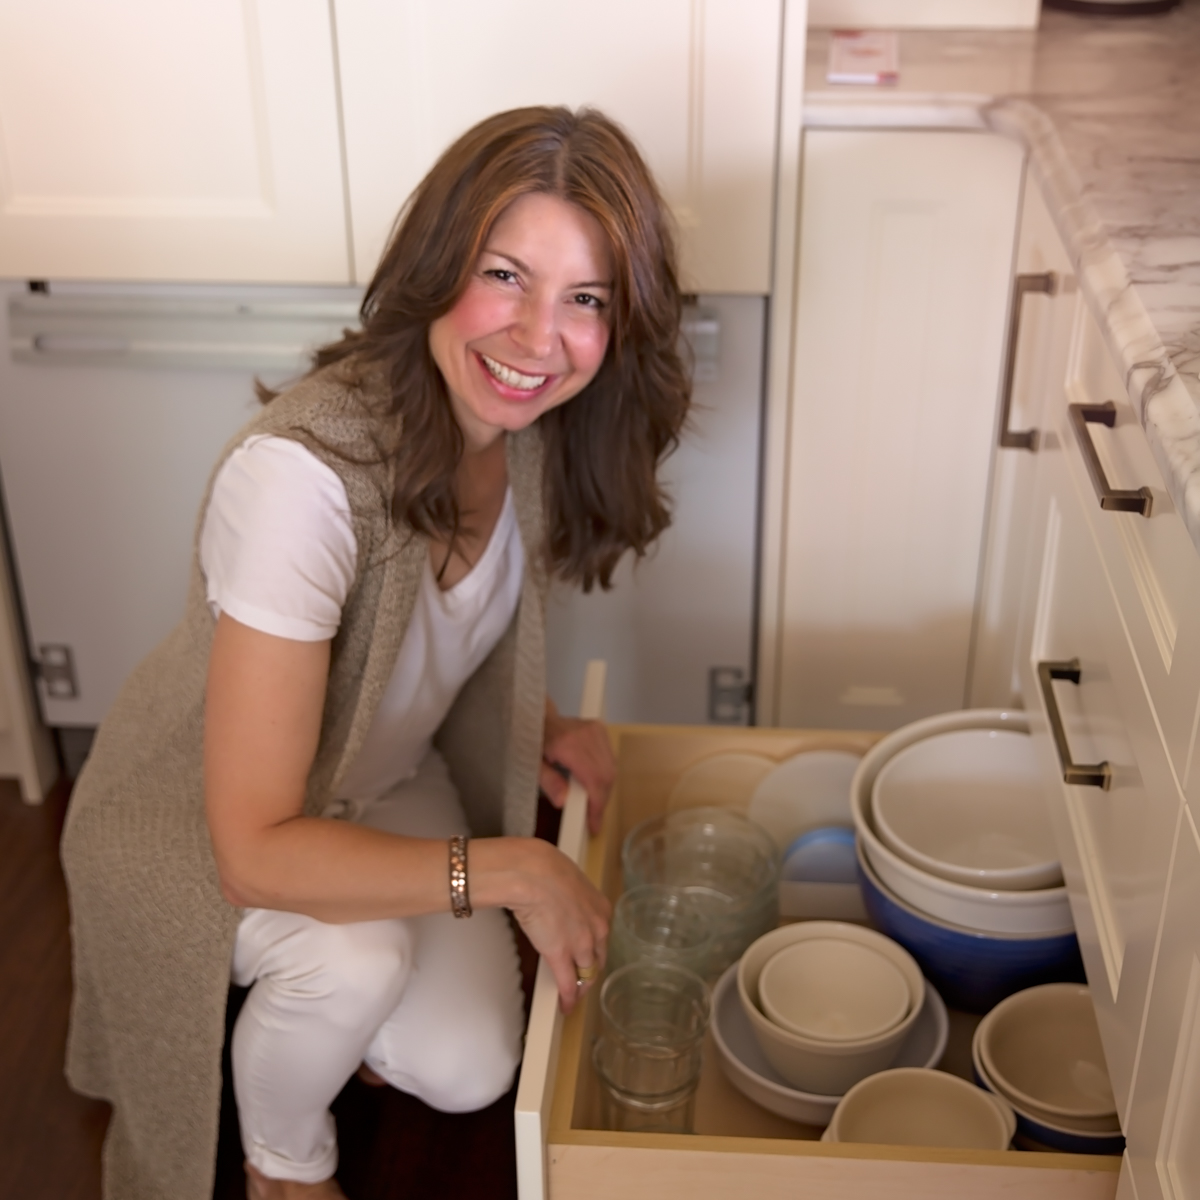 A professional organizer works on a kitchen drawer to organize the contents.